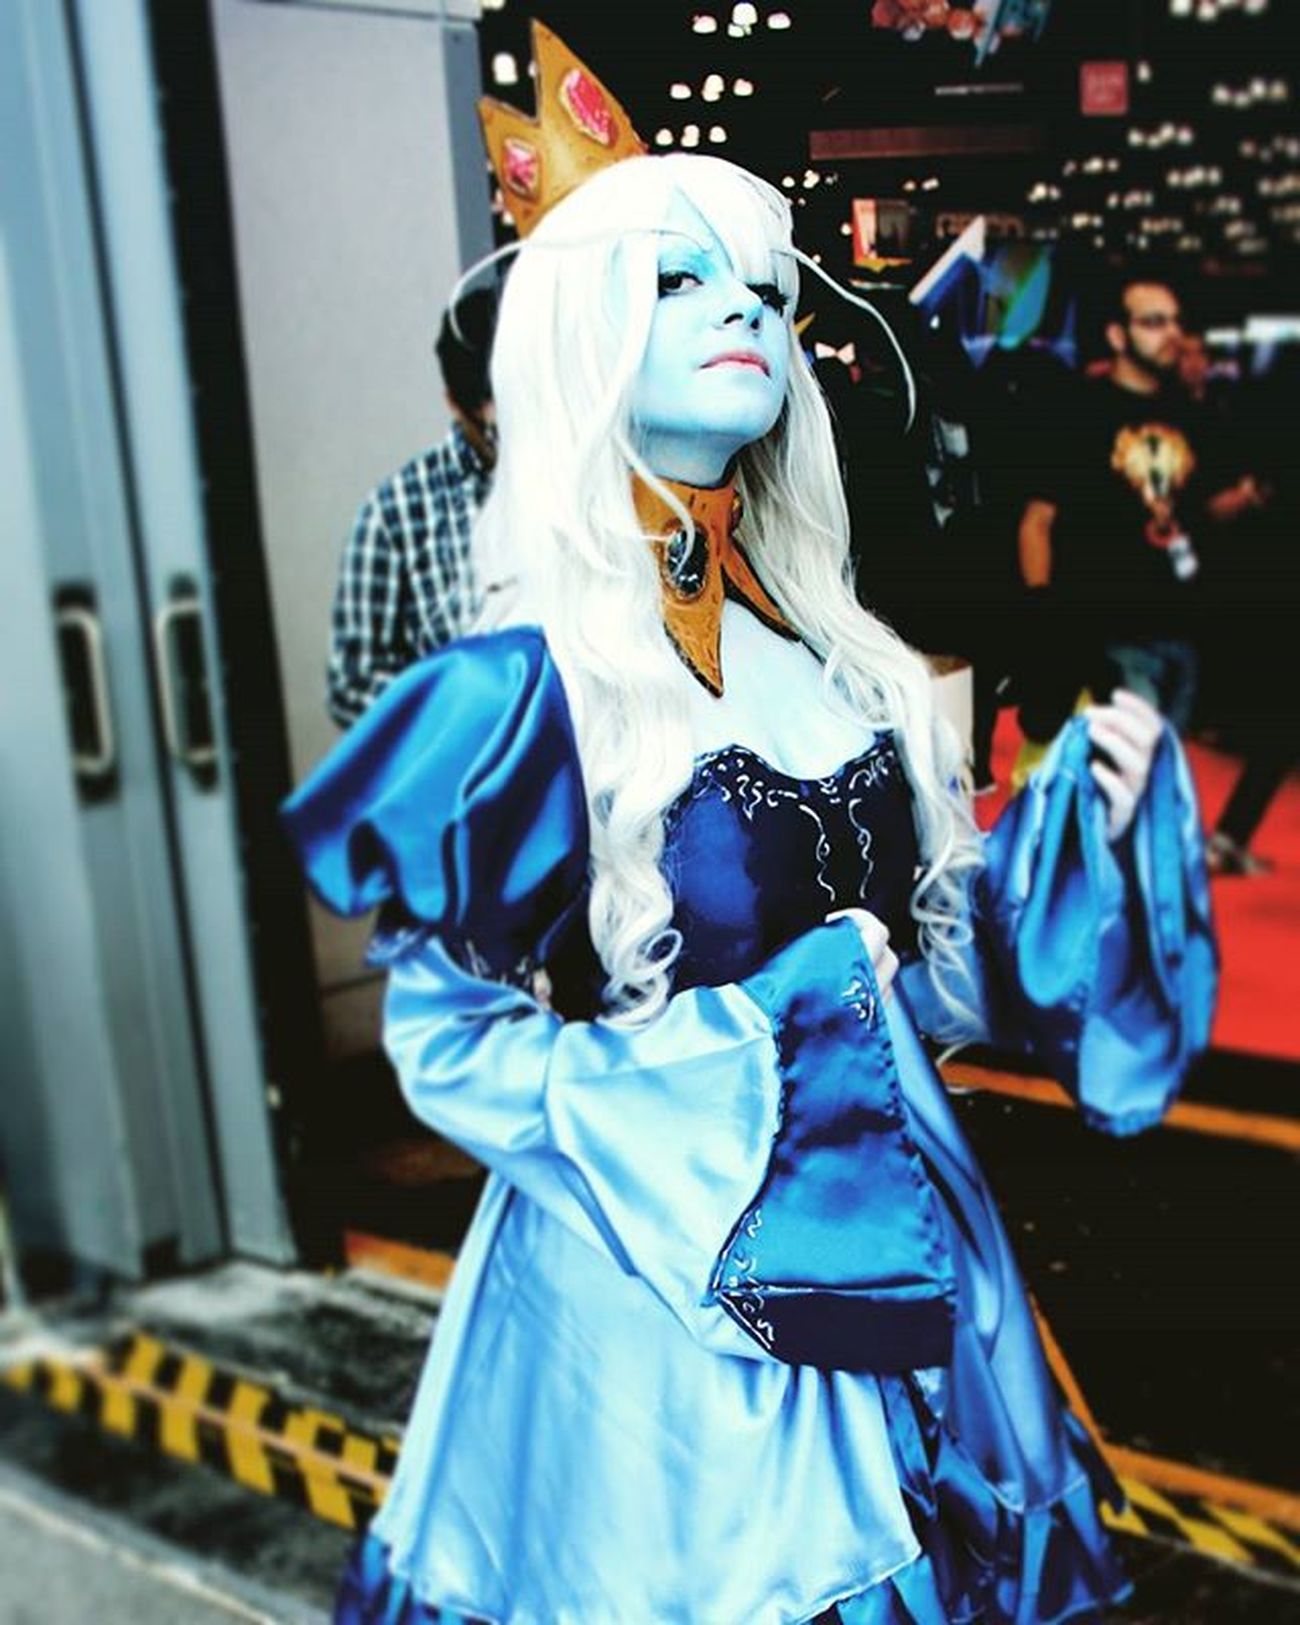 Photo by @tpa_trigger Photography Model Cosplayer Ccon15 Comiccon Cosplay CC Con Nycomiccon Internationalcosplayday NYC Cosplaygirl Cosplayers Cosplayday EventPhotography Photographer Photography Eventphotographer Cc15 Nycc15 Anime Manga NYCC Newyorkcomiccon Costume NyComicCon ComicCon manga iceking adventuretime